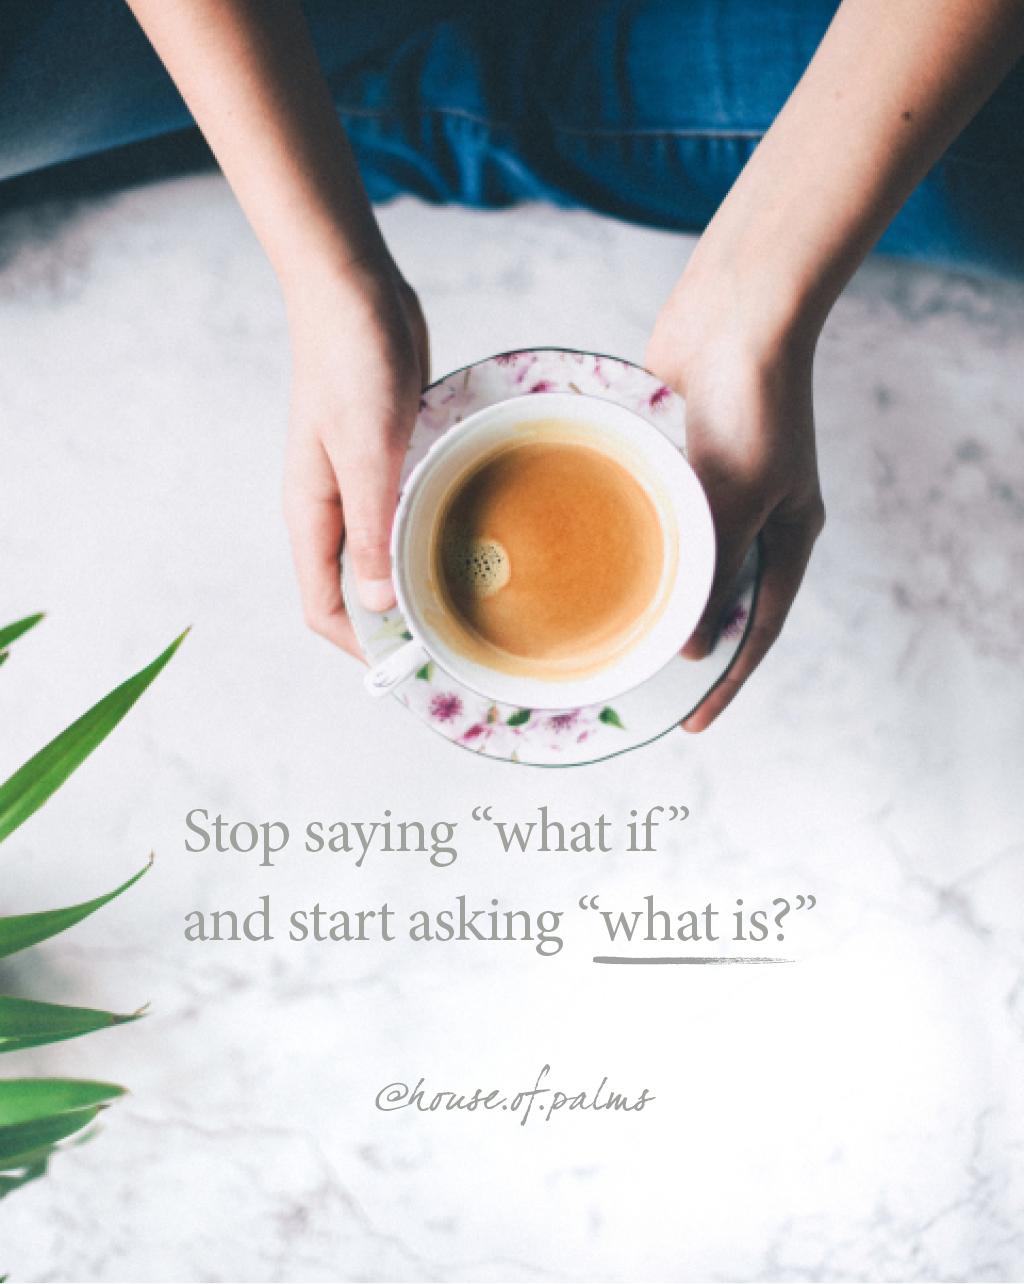 Overcoming fear - Stop saying what if and ask what is